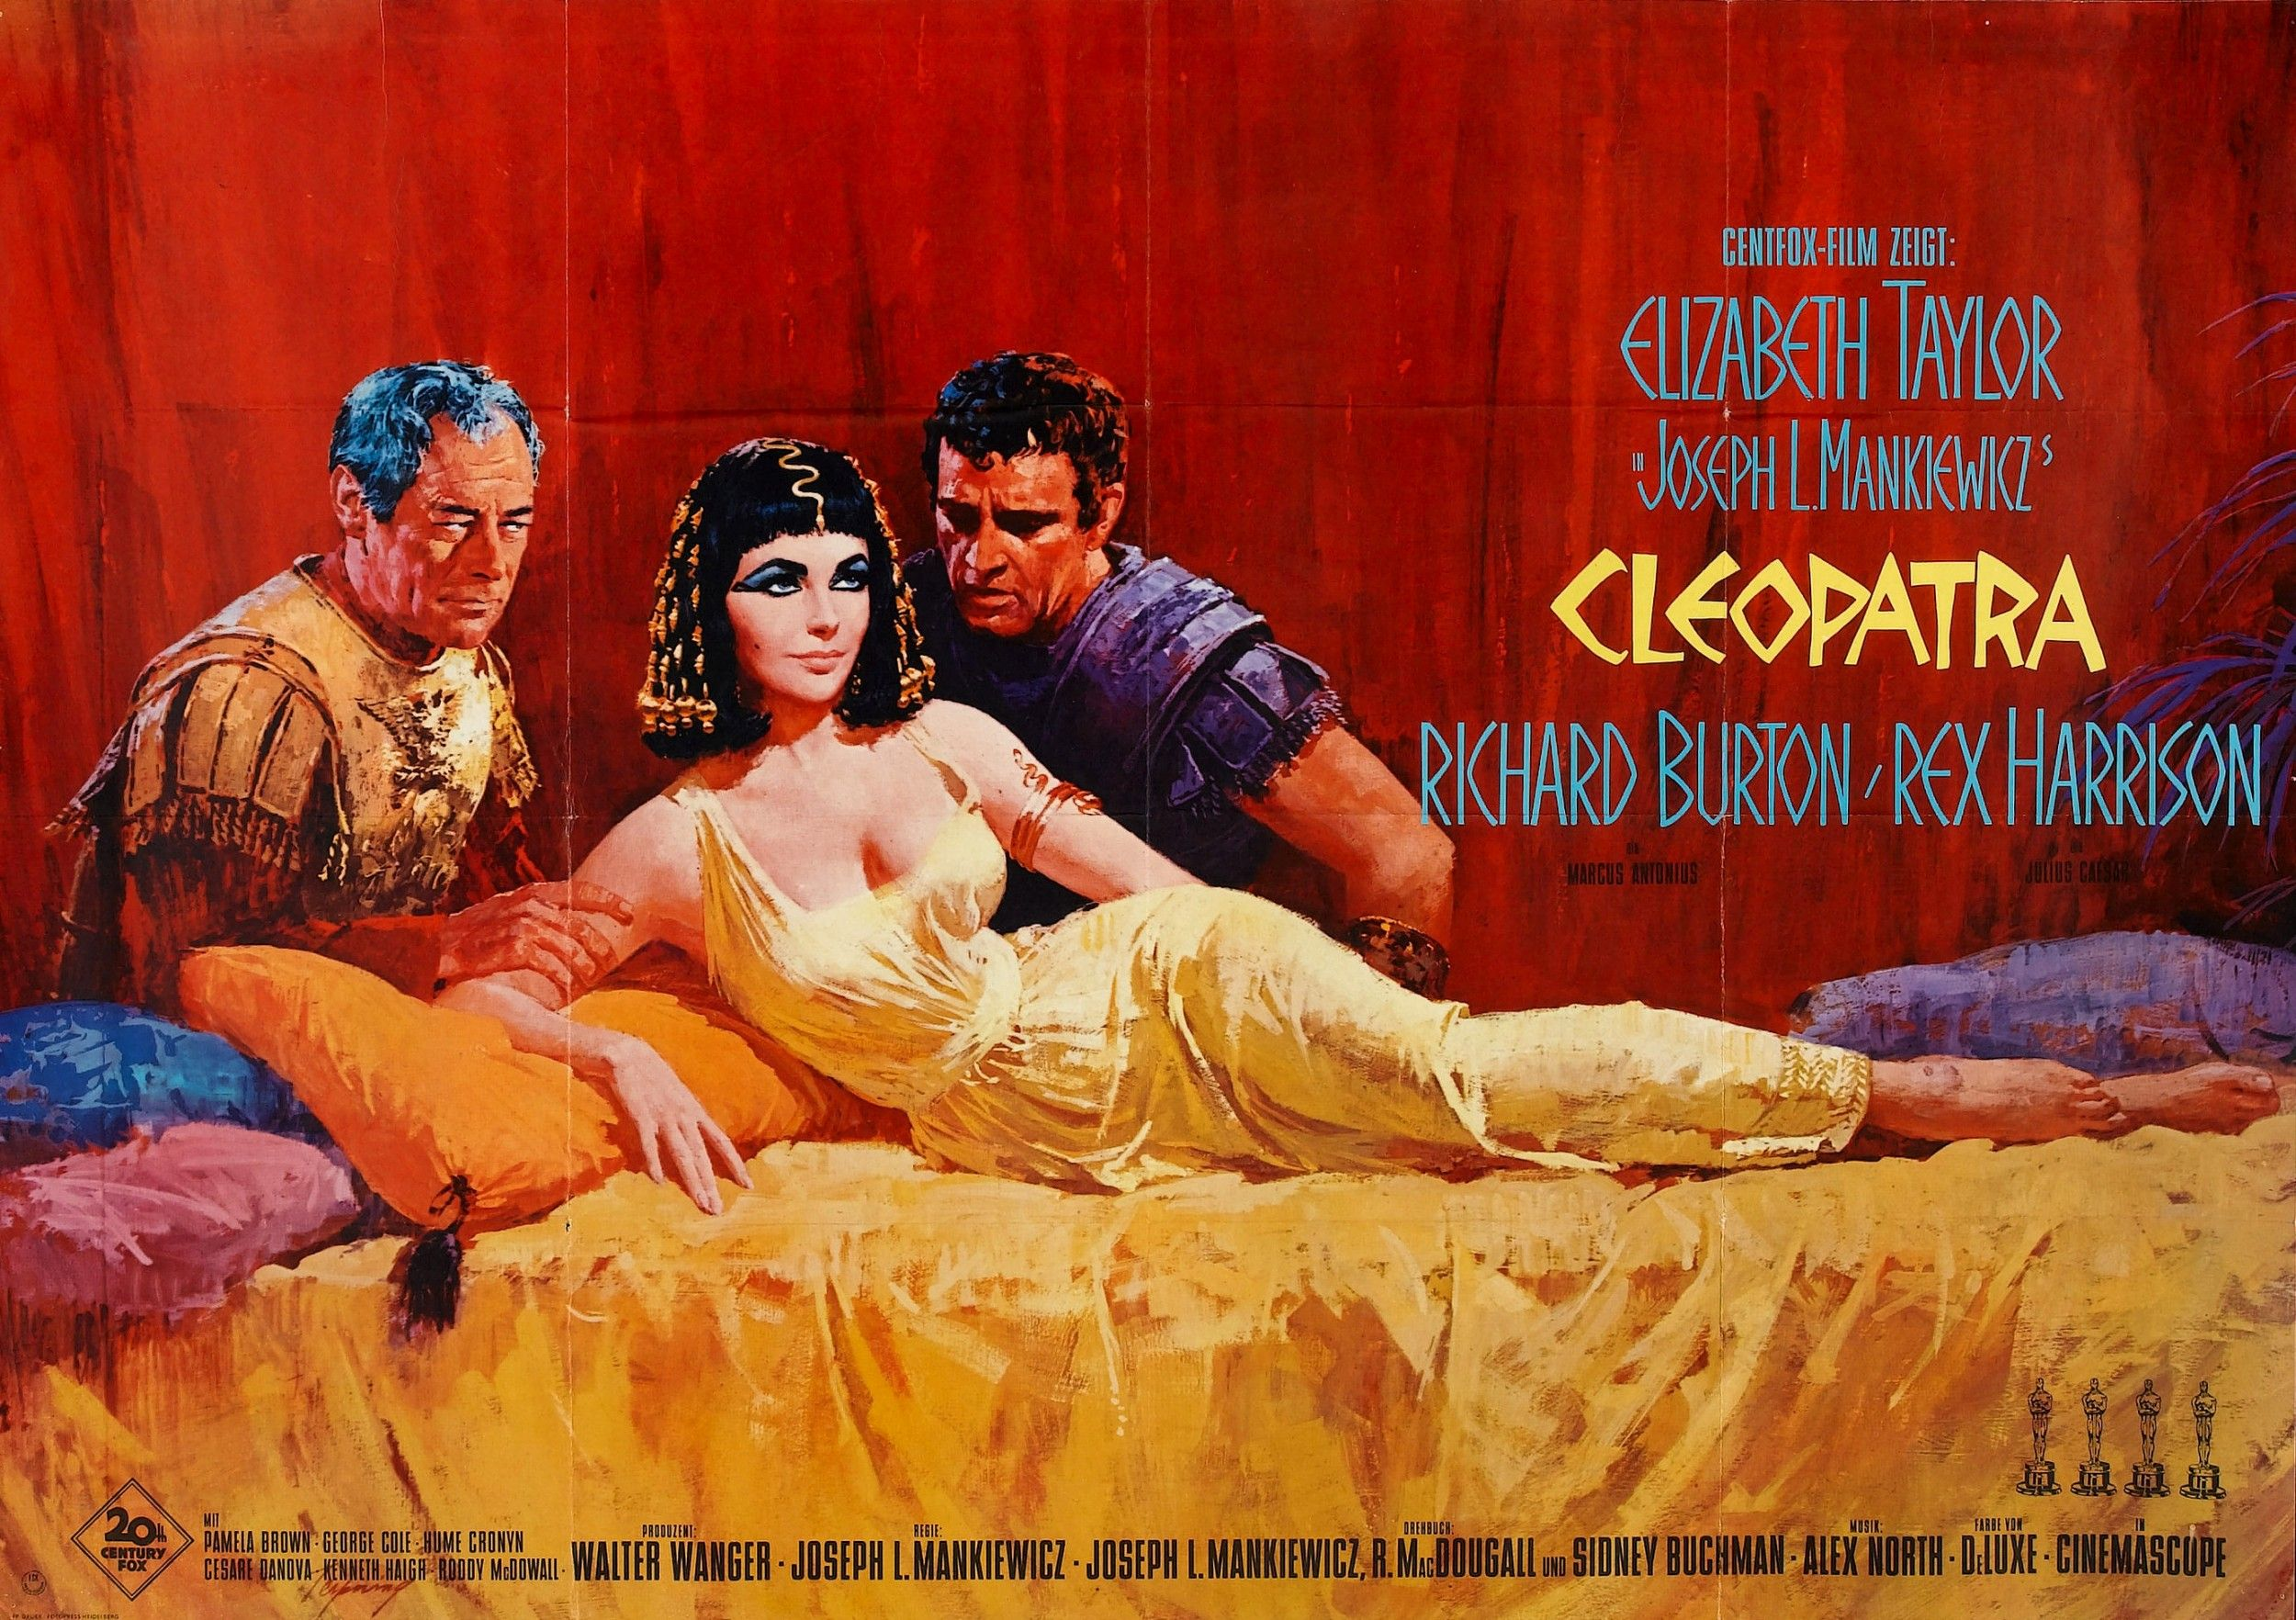 Cleopatra Elizabeth Taylor Rickard Burton Vintage Movie Poster Reproduction